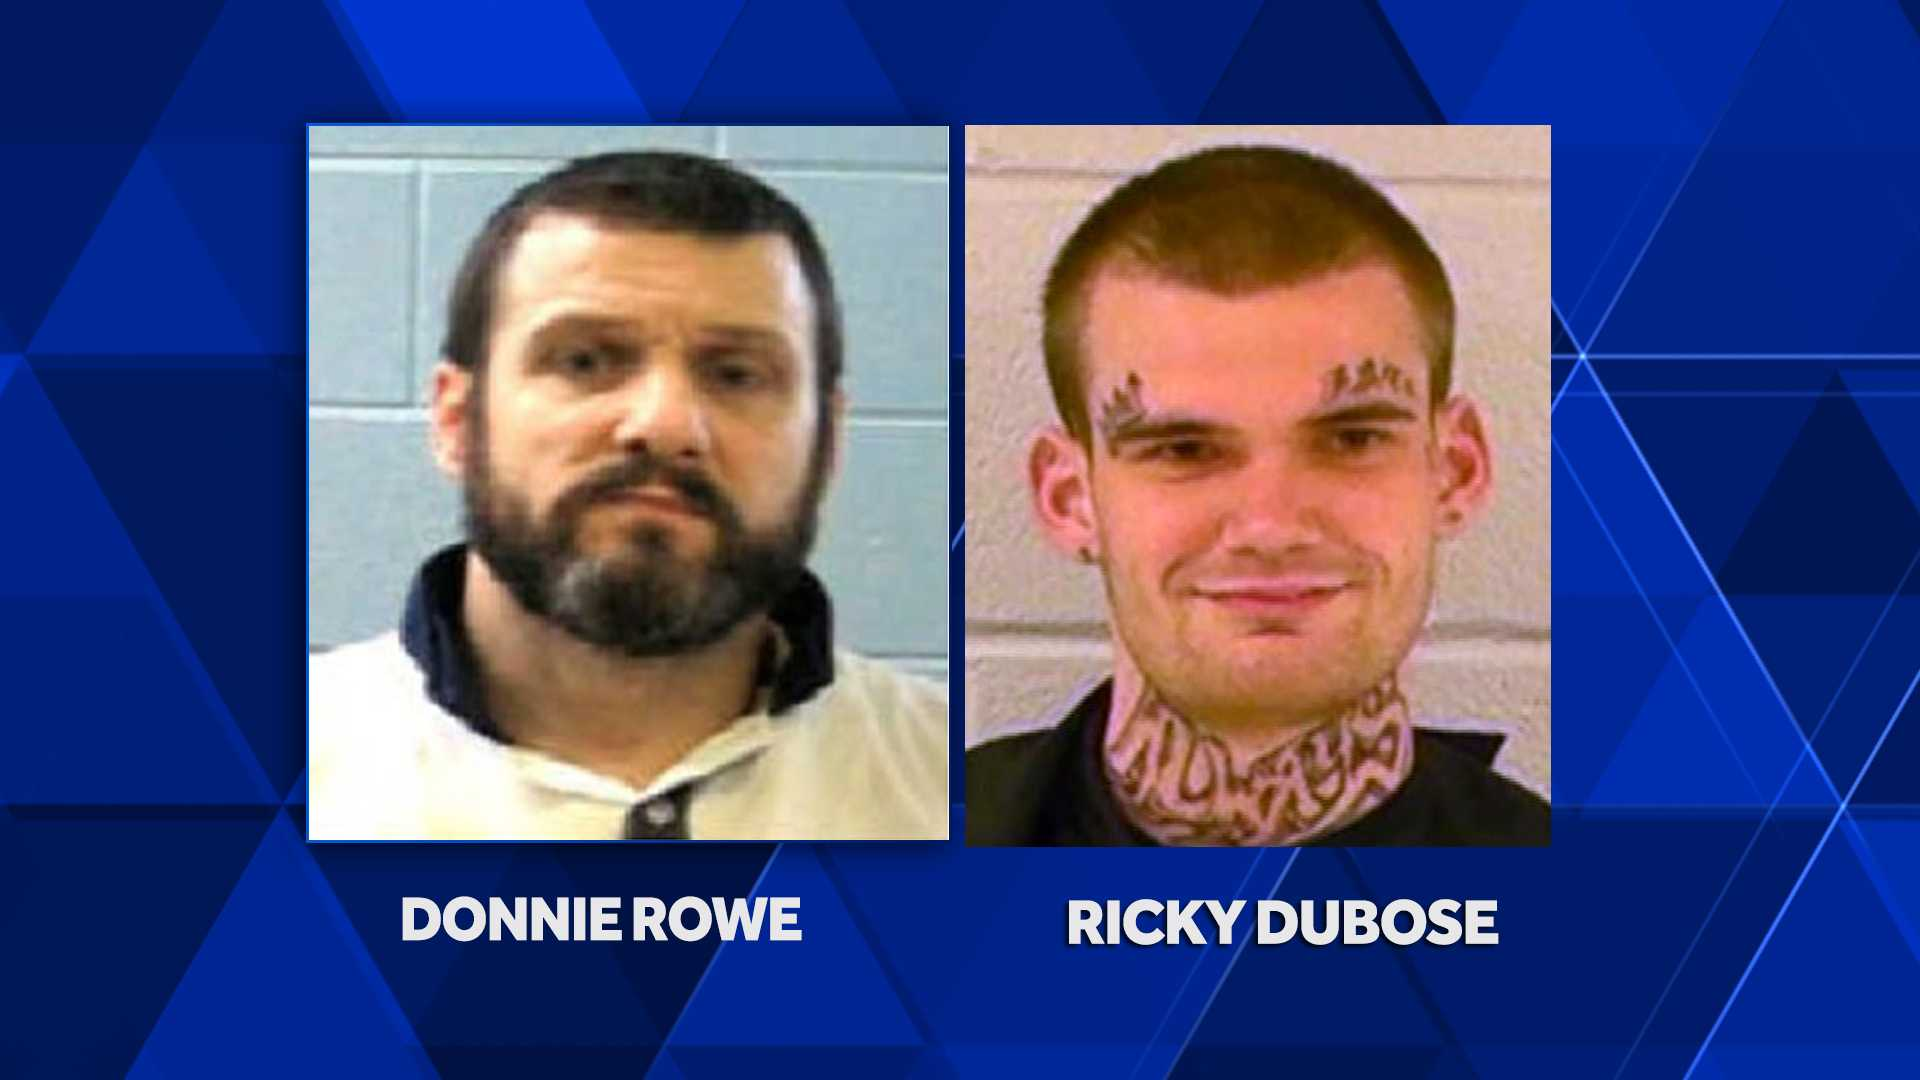 Escaped Georgia inmates captured, authorities say - KBZK.com | Continuous News | Bozeman, Montana